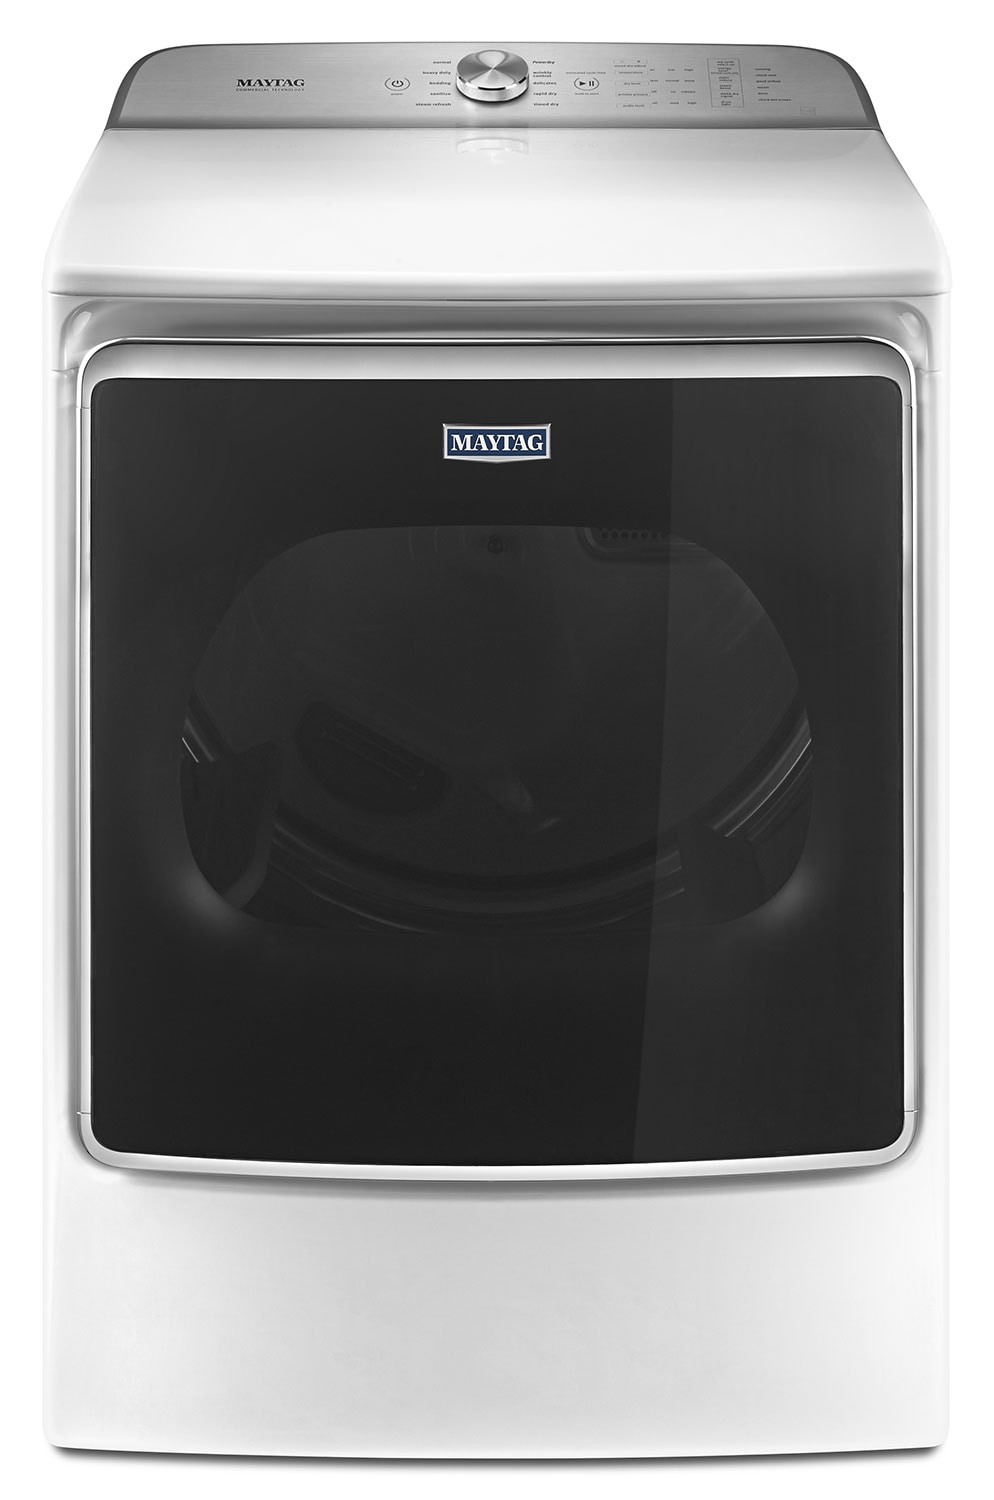 Maytag 9.2 Cu. Ft. Electric Dryer – YMEDB955FW